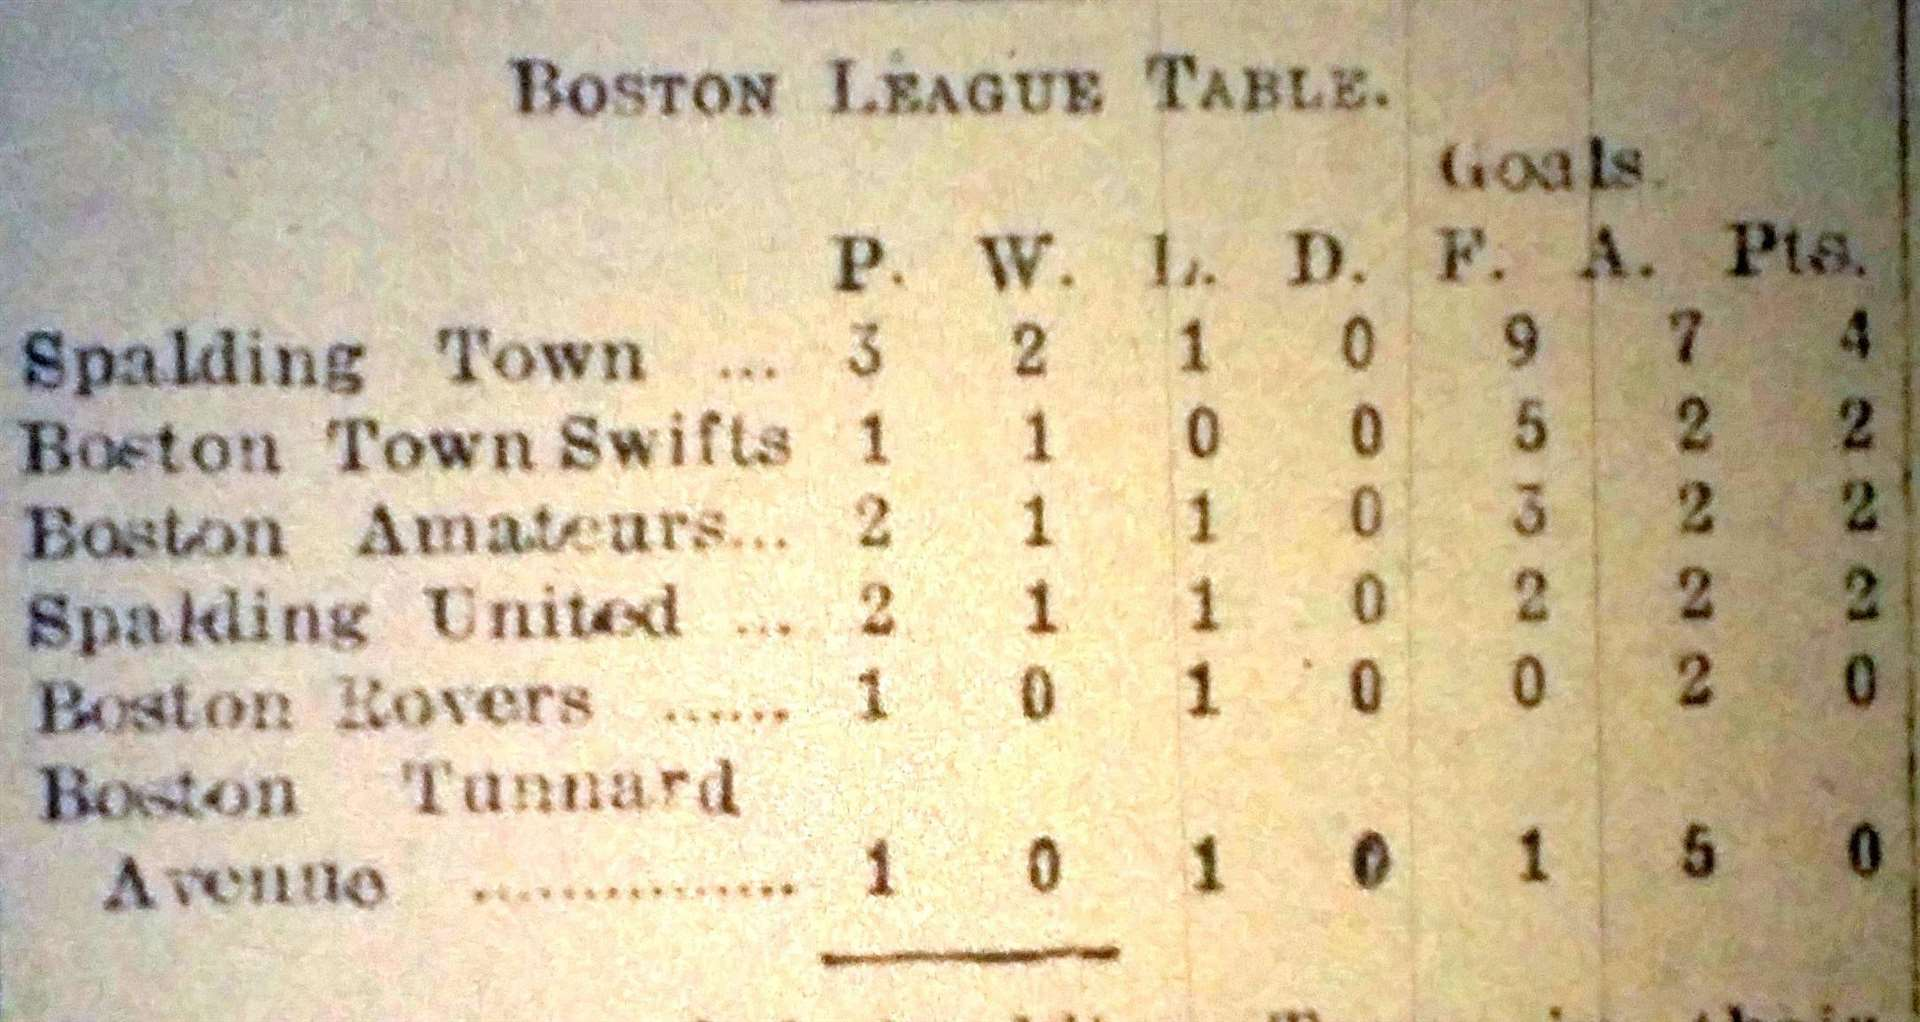 Boston League